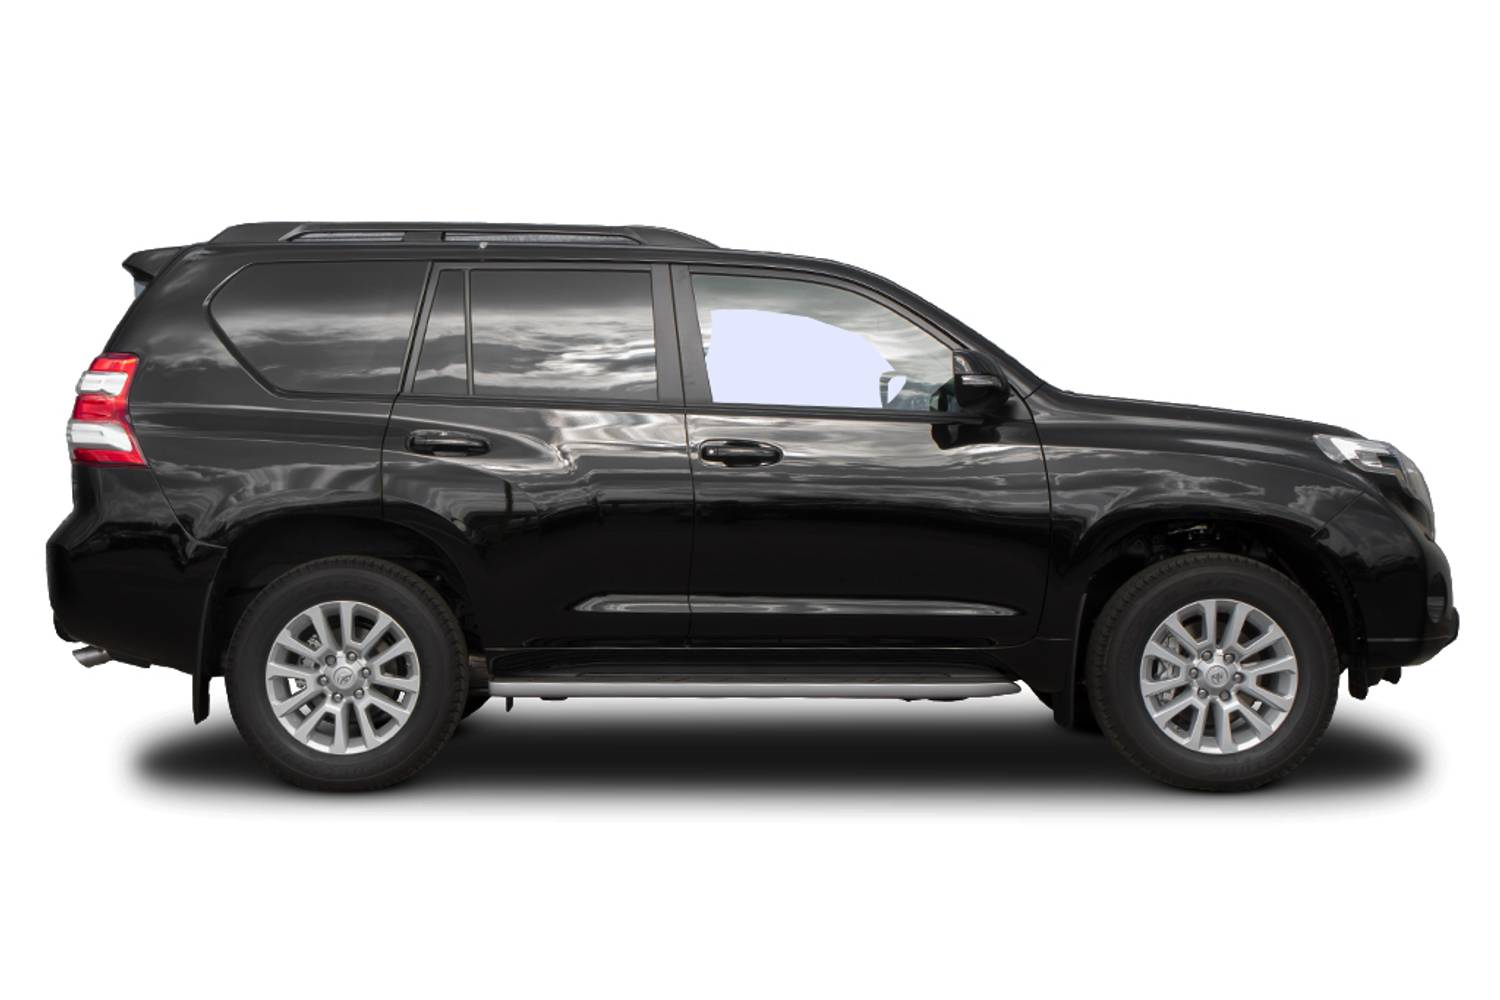 new toyota land cruiser diesel sw 2 8 d 4d invincible x auto 5 door 7 seats 2016 for sale. Black Bedroom Furniture Sets. Home Design Ideas